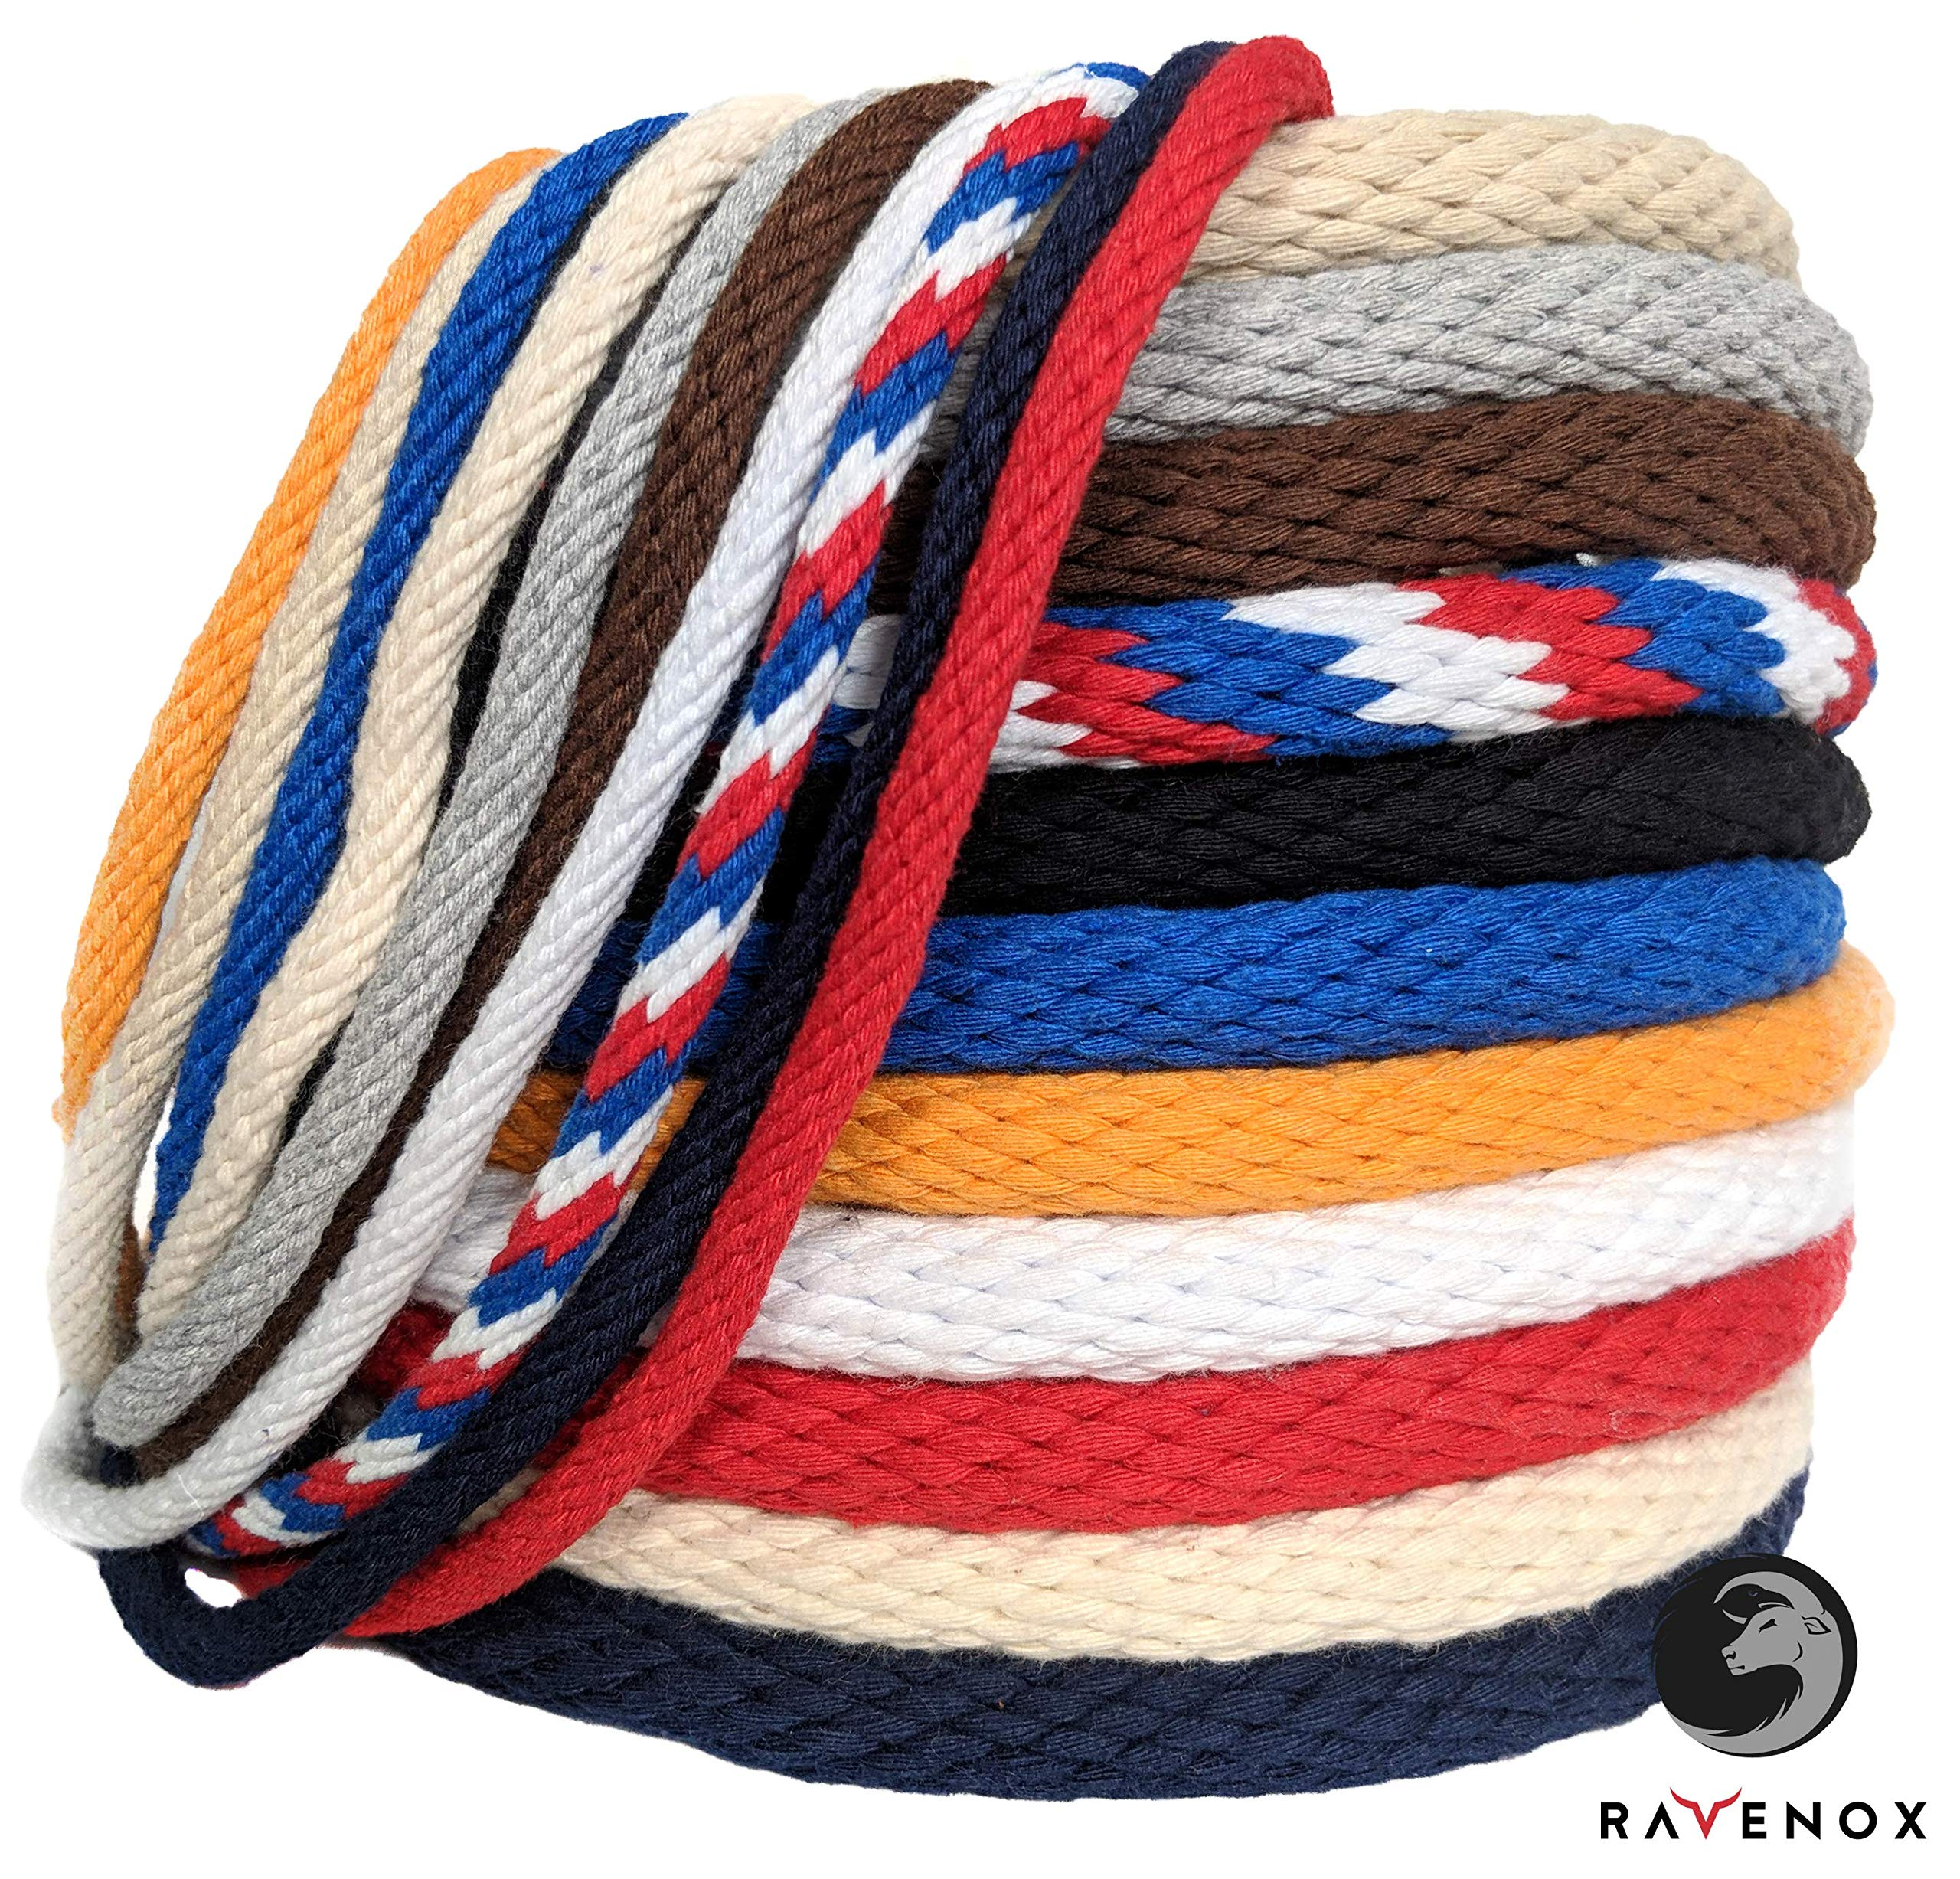 Ravenox Solid Braid Cotton Rope | (Royal Blue)(1/4-in x 25 FT) | Made in The USA | Used as Sash Cord, Clothesline, Macrame Projects, Utility Rope and More | Variety of Colors and Lengths by Ravenox